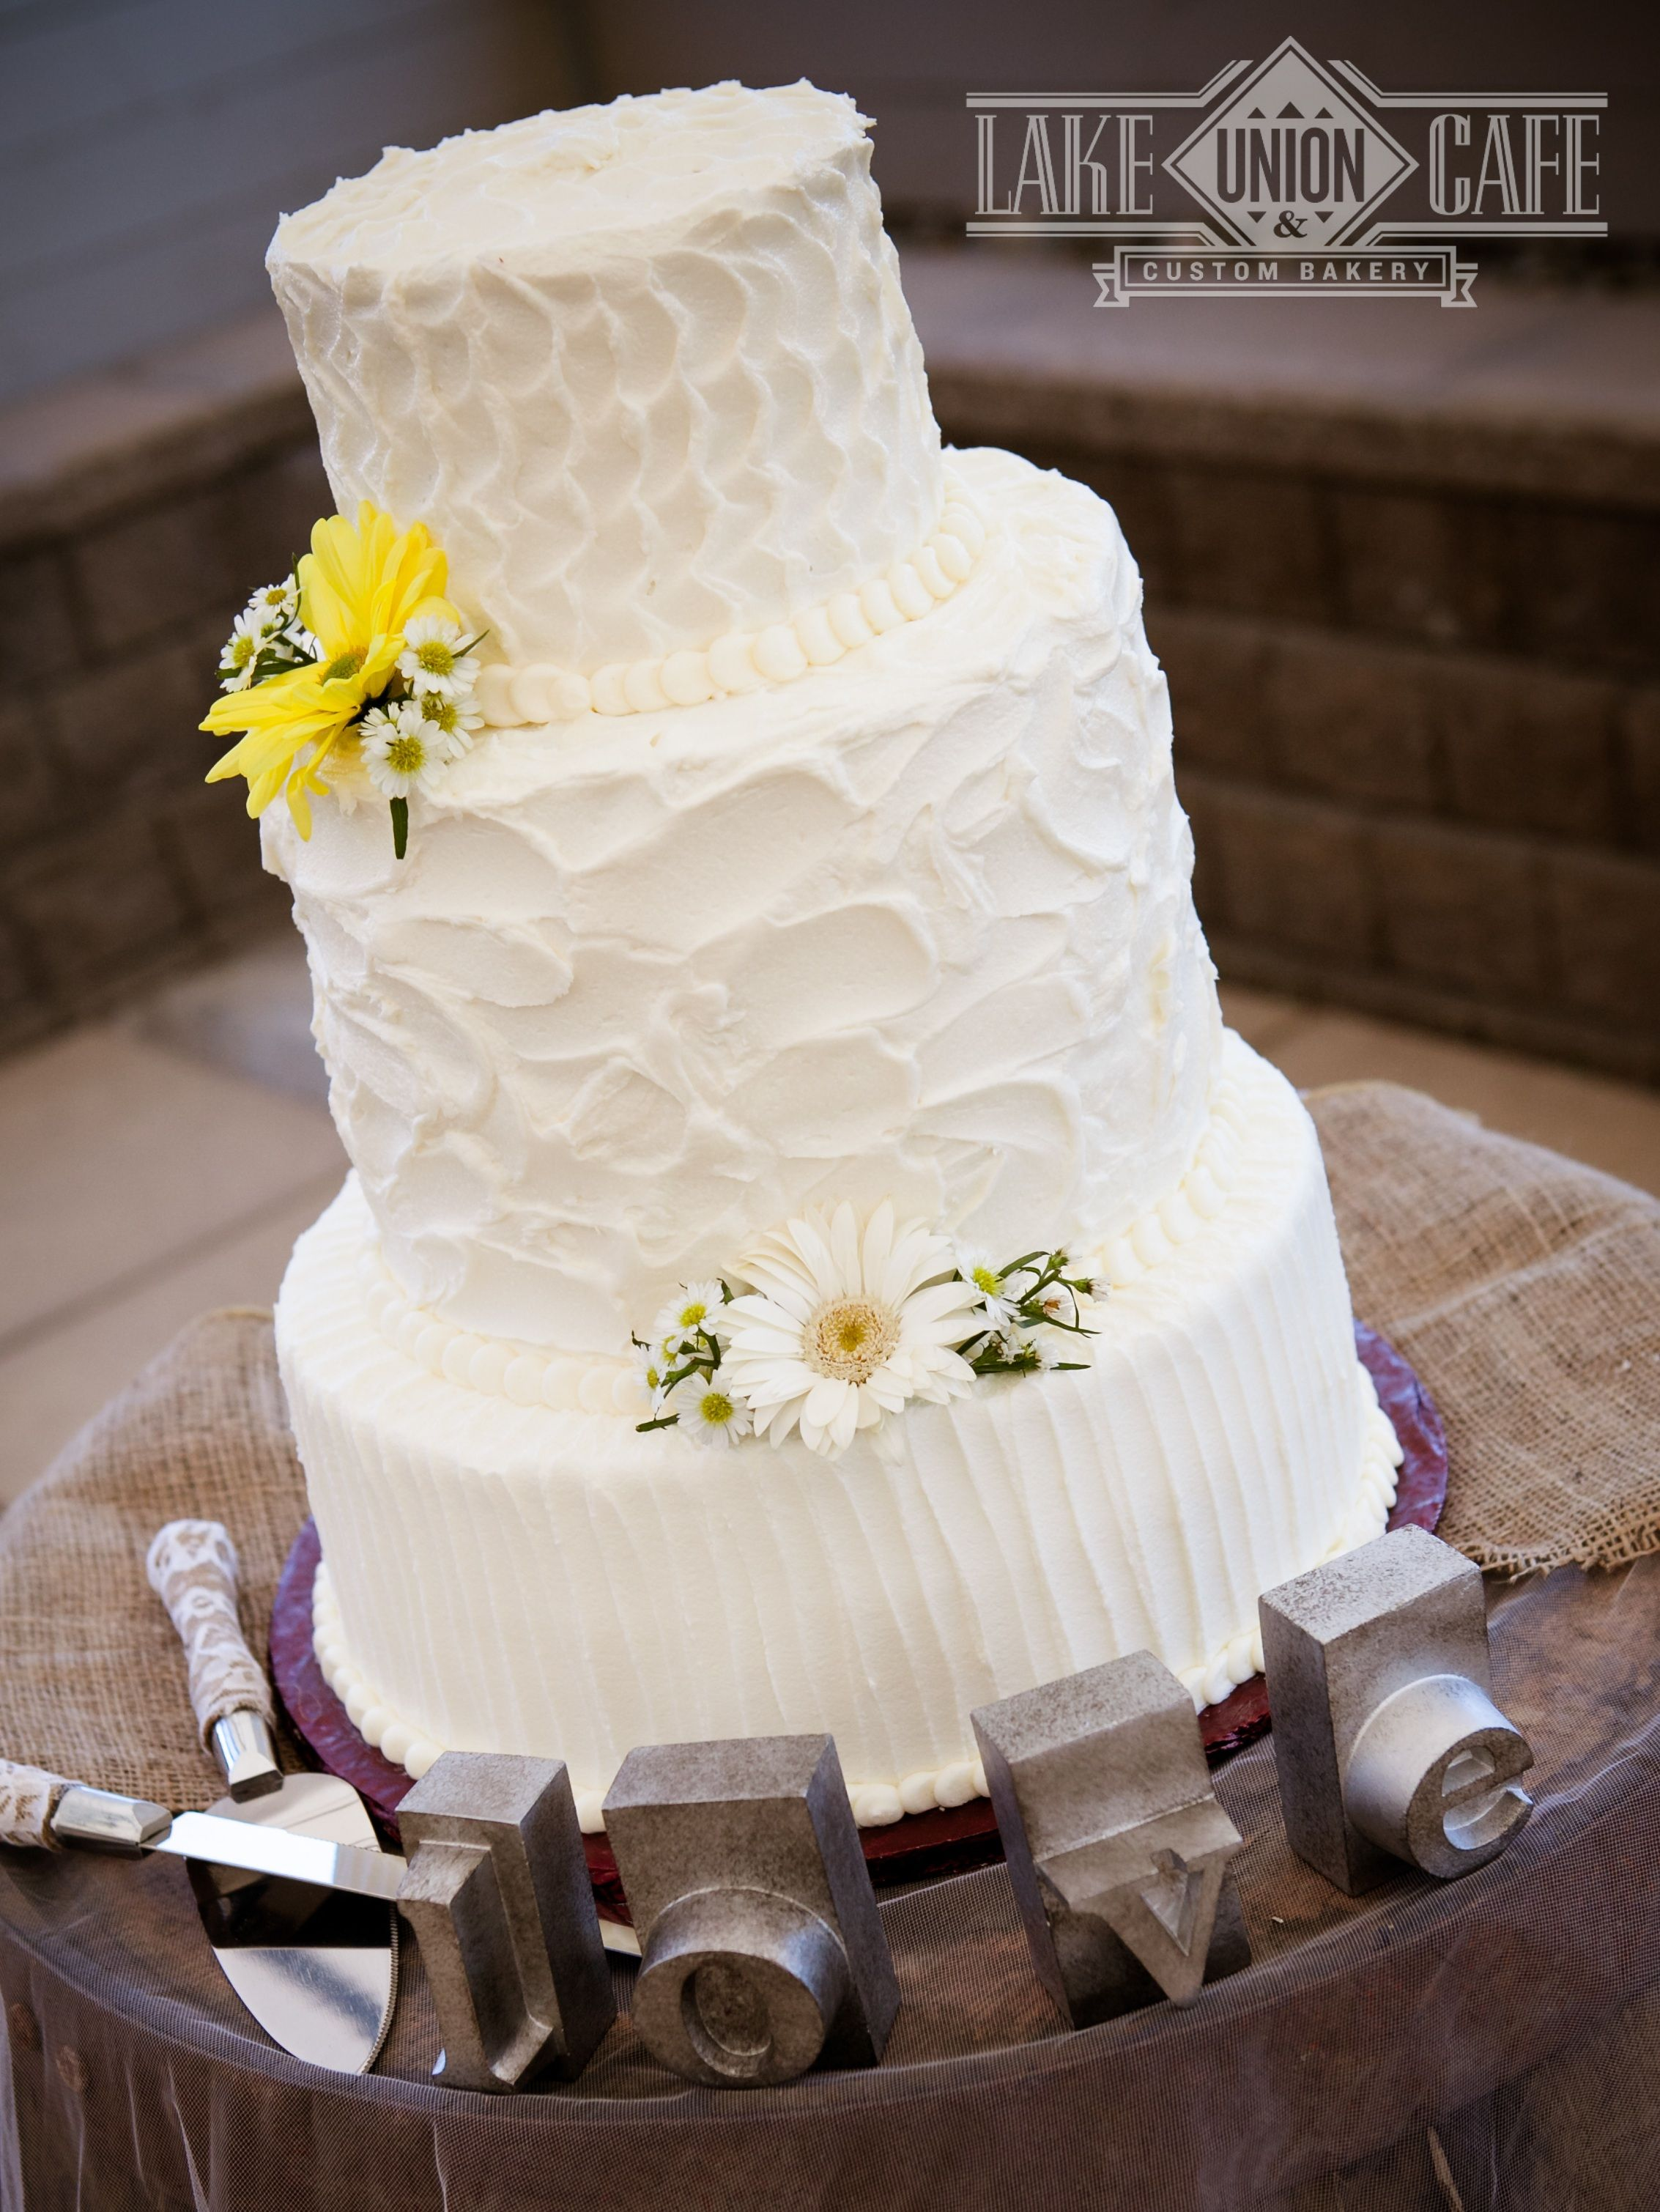 Multiple Textures All In Buttercream Make This Rustic Chic Wedding Cake Interesting Photo By HR Northwest Photography Lake Union Cafe